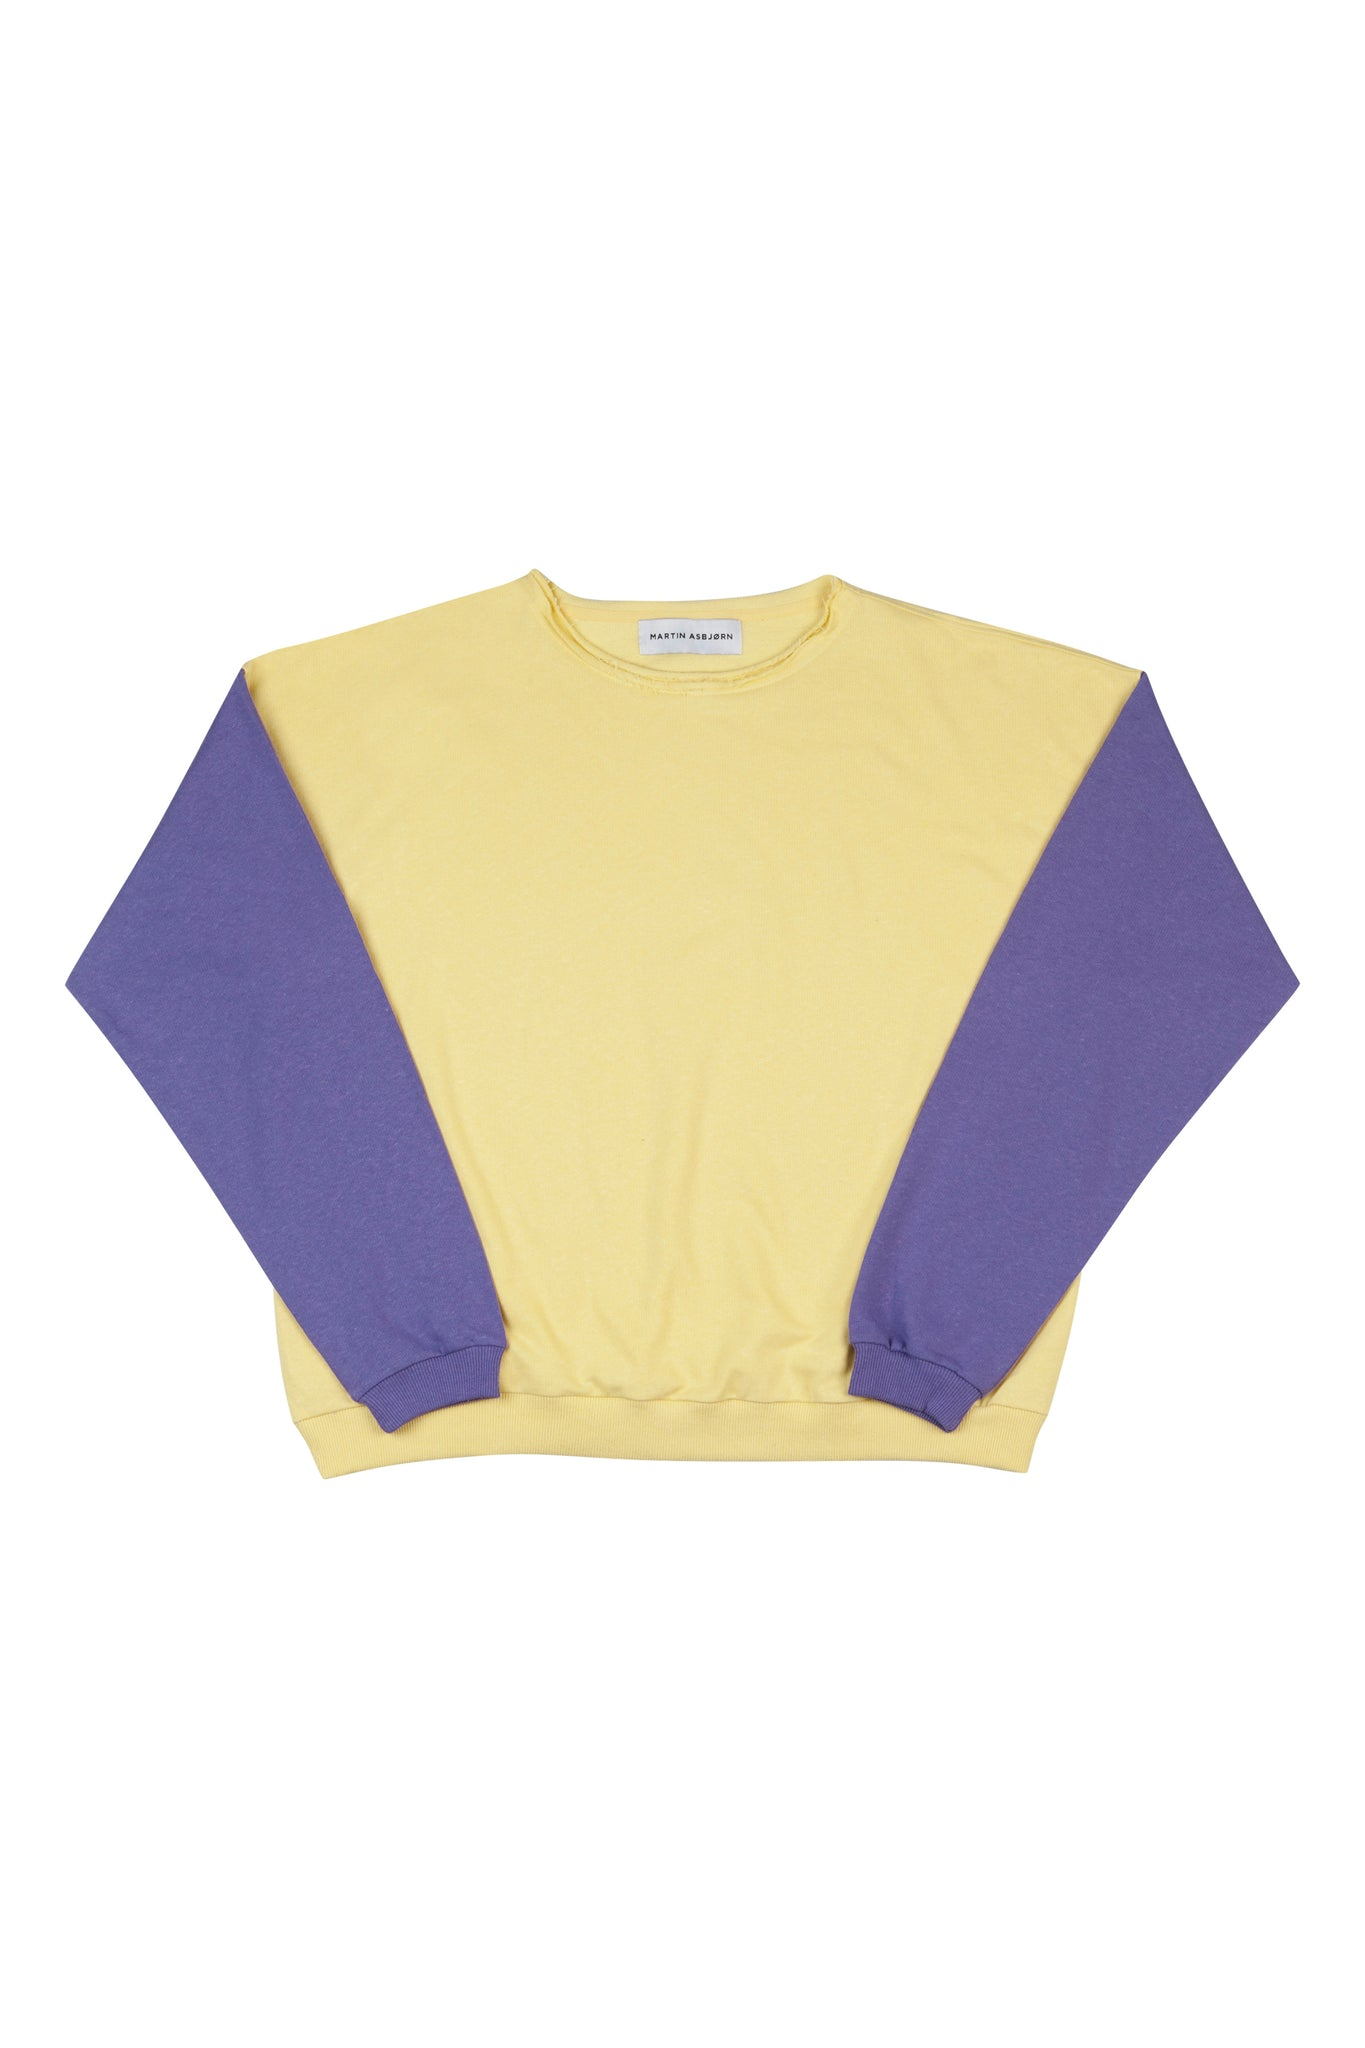 Julian Oversized Jersey Sweatshirt in Banana Yellow/ Lilac from Danish Menswear Designer Martin Asbjørn